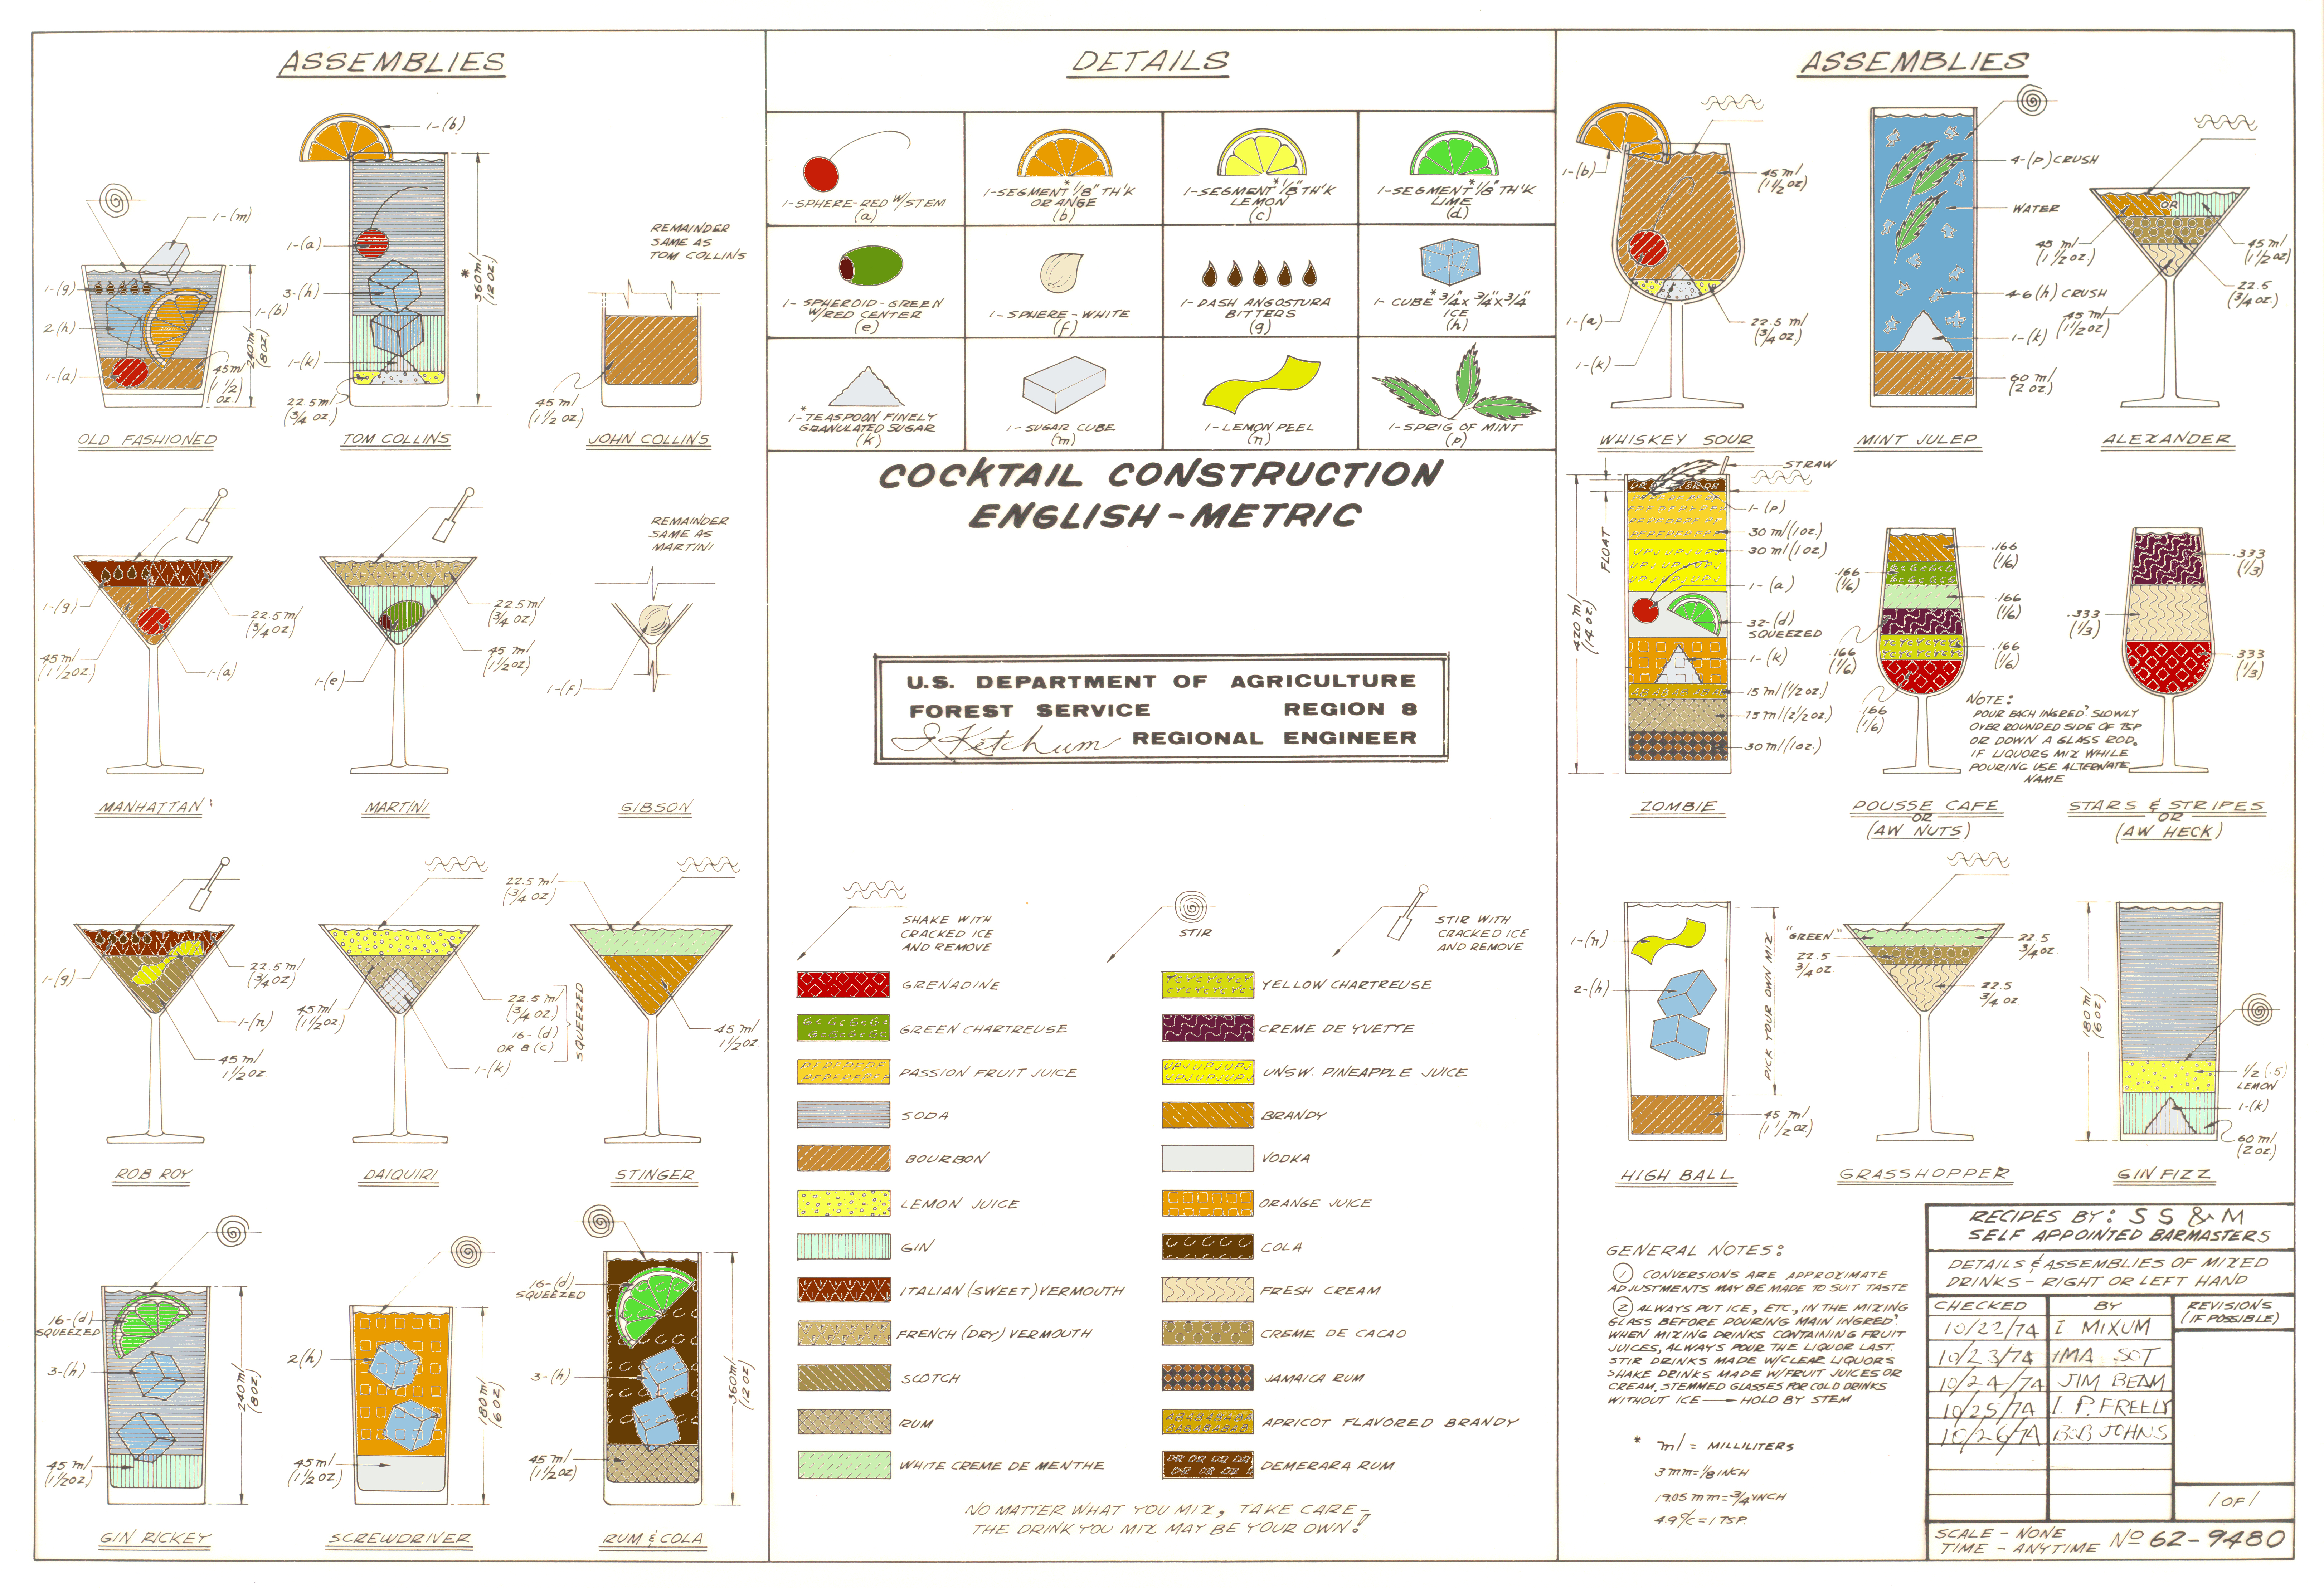 Wire Color Code Chart: Cocktail Construction Chart color.jpg - Wikimedia Commons,Chart